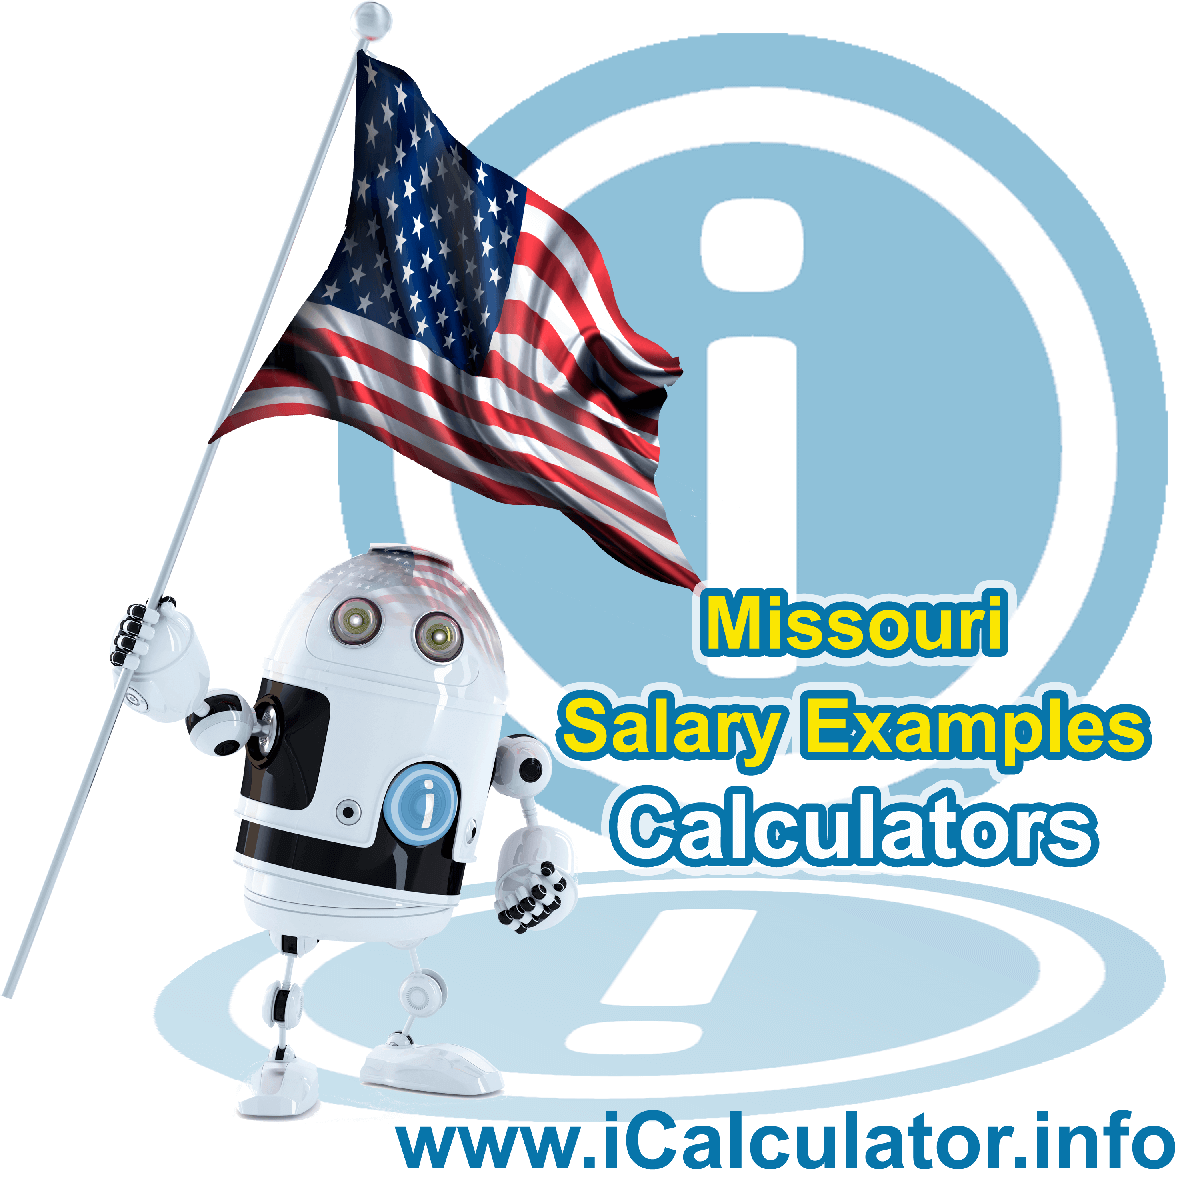 Missouri Salary Example for $70,000.00 in 2020 | iCalculator | $70,000.00 salary example for employee and employer paying Missouri State tincome taxes. Detailed salary after tax calculation including Missouri State Tax, Federal State Tax, Medicare Deductions, Social Security, Capital Gains and other income tax and salary deductions complete with supporting Missouri state tax tables